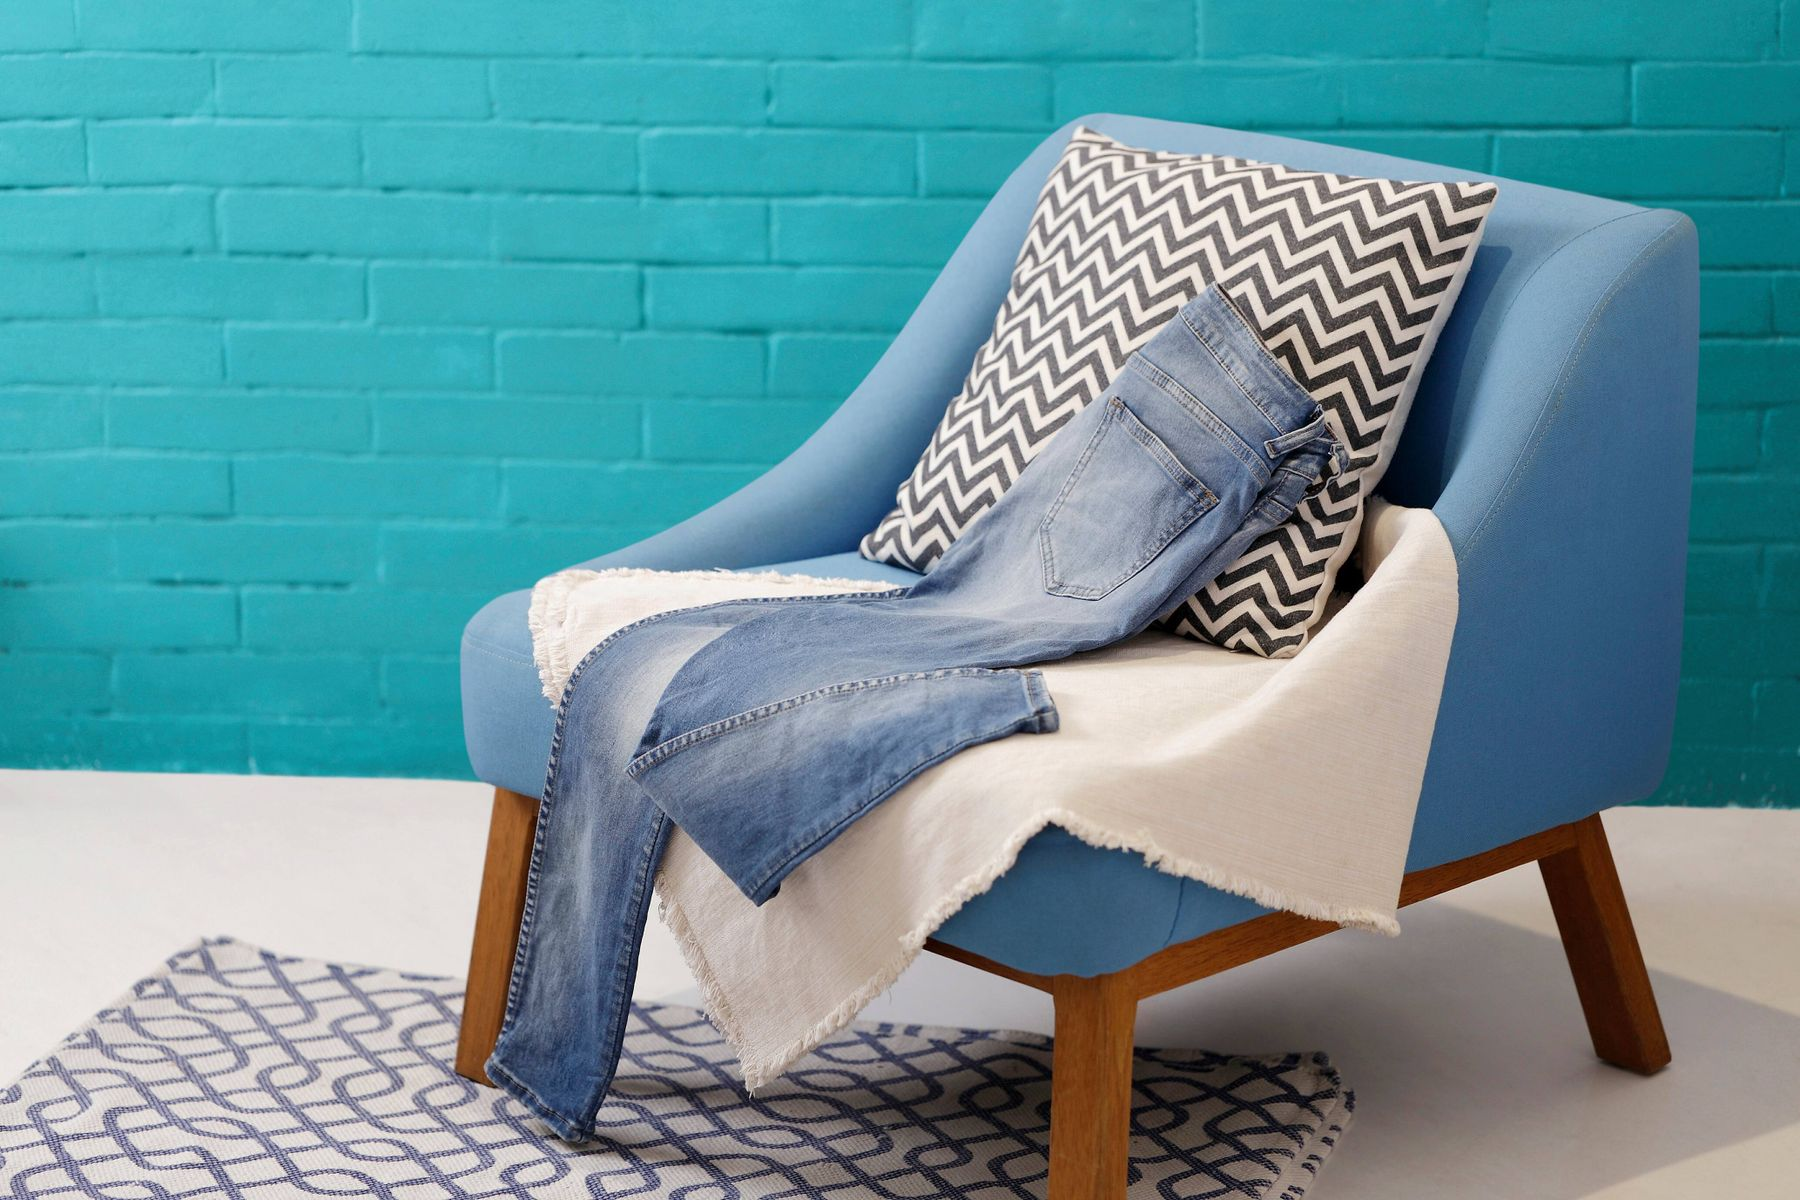 a blue chair with blankets and a pair of jeans